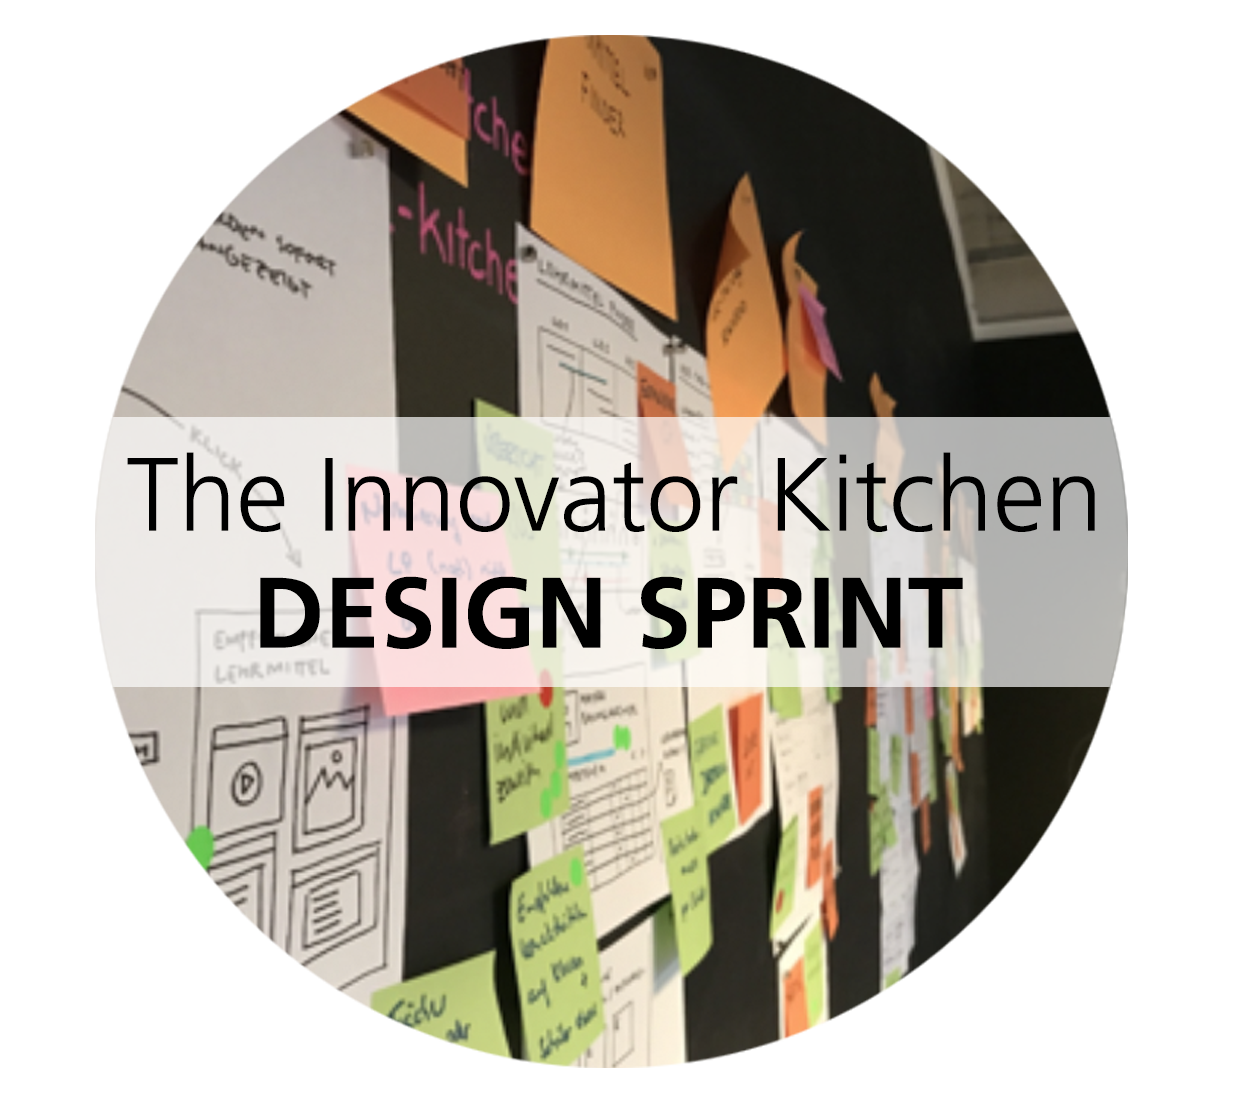 """2019-03-01  The Innovator Kitchen – design sprint   Combine open innovation, design thinking and agile business development in our Amsterdam """"Design Sprint Kitchen"""" and create and validate breakthrough concepts in 1 week. •Rethink and develop business and product concepts together with experts. •Design, prototype and validate with real customer feedback.   Contact us  for tailored sessions, dates or locations Get more info  here"""